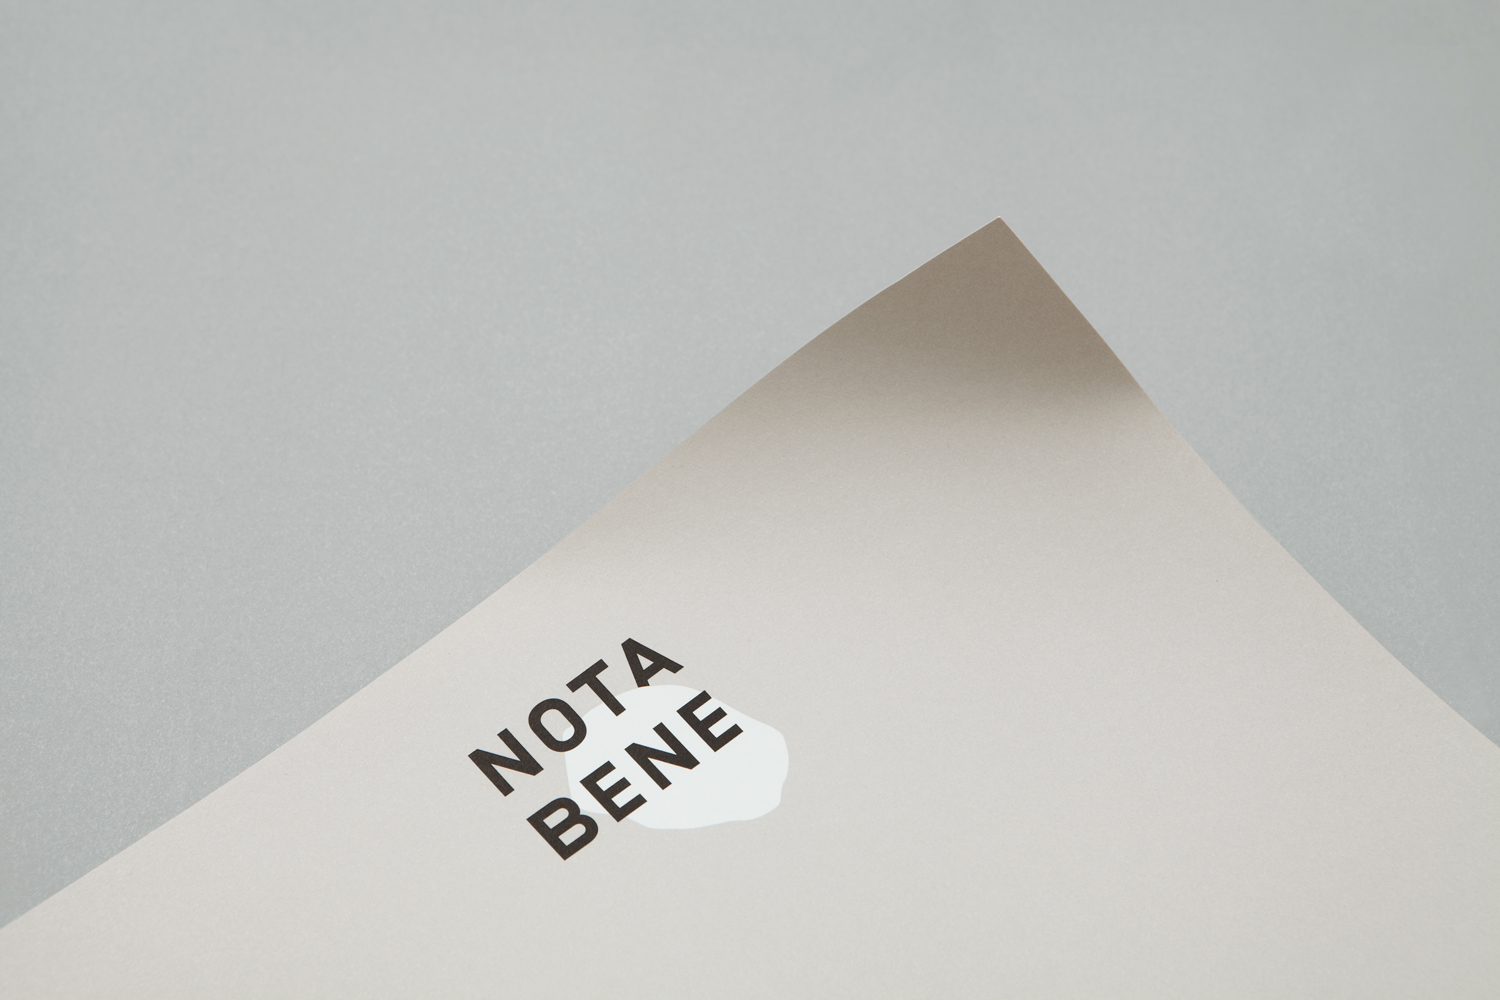 Brand identity and headed paper for Toronto restaurant Nota Bene by graphic design studio Blok, Canada